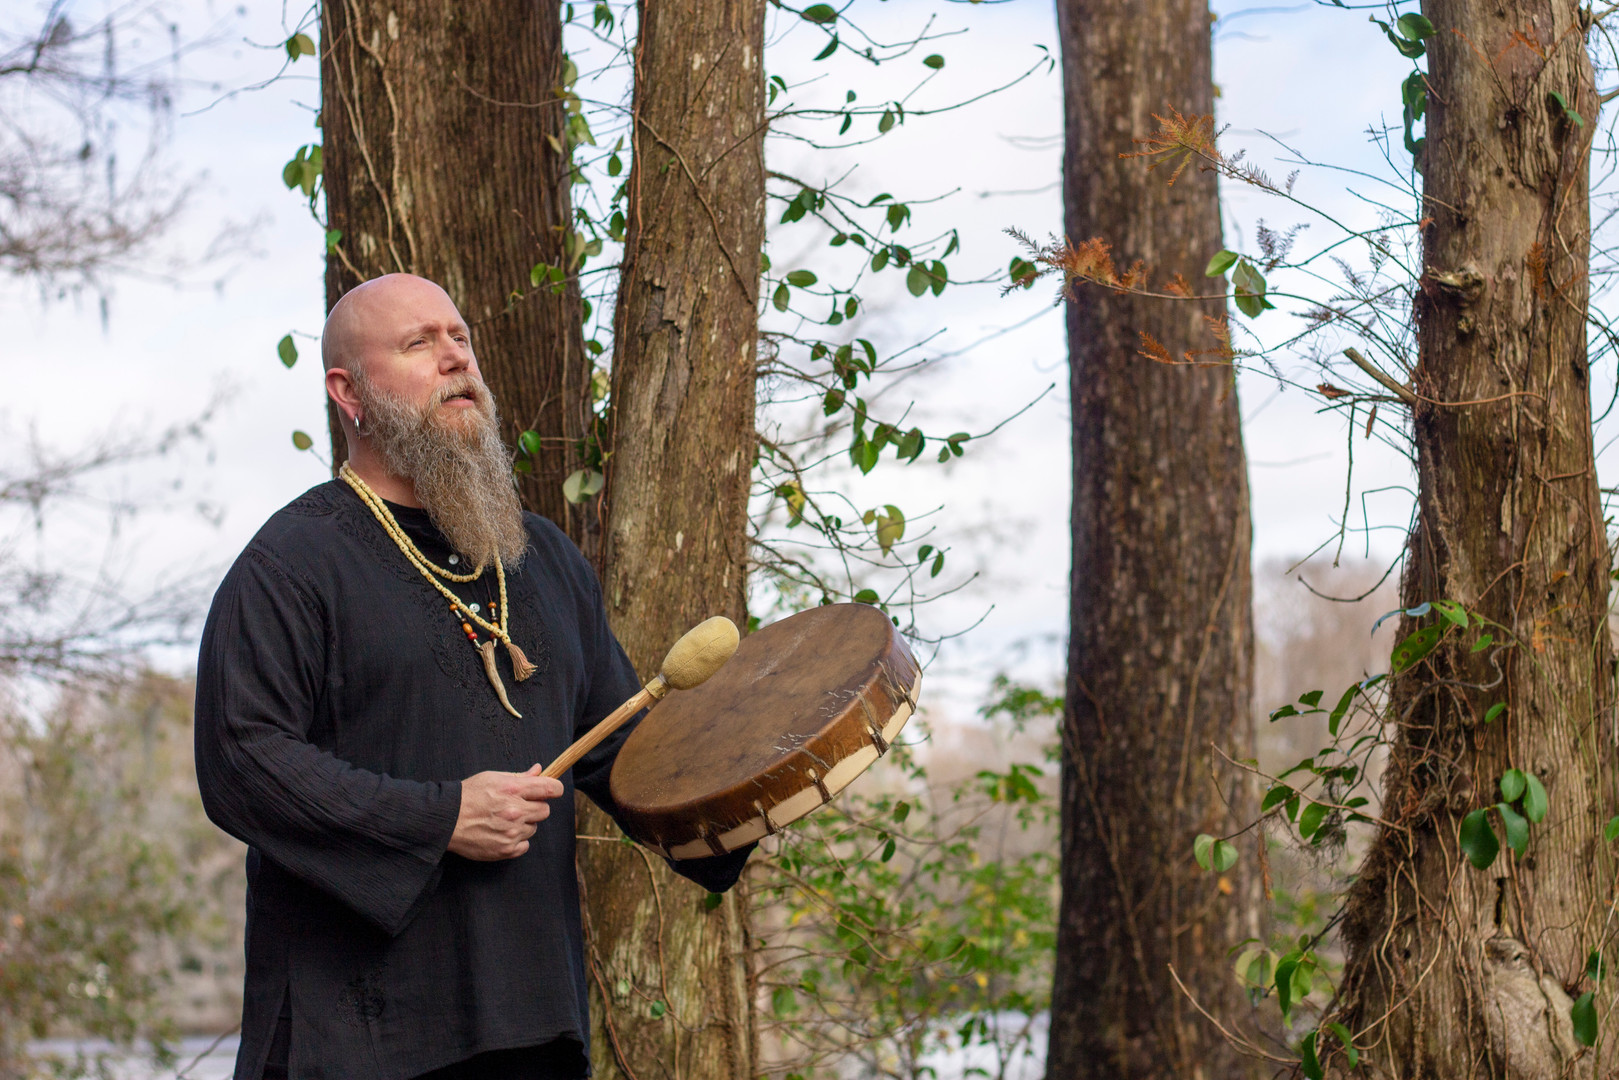 Shamanic Journeying with Drums